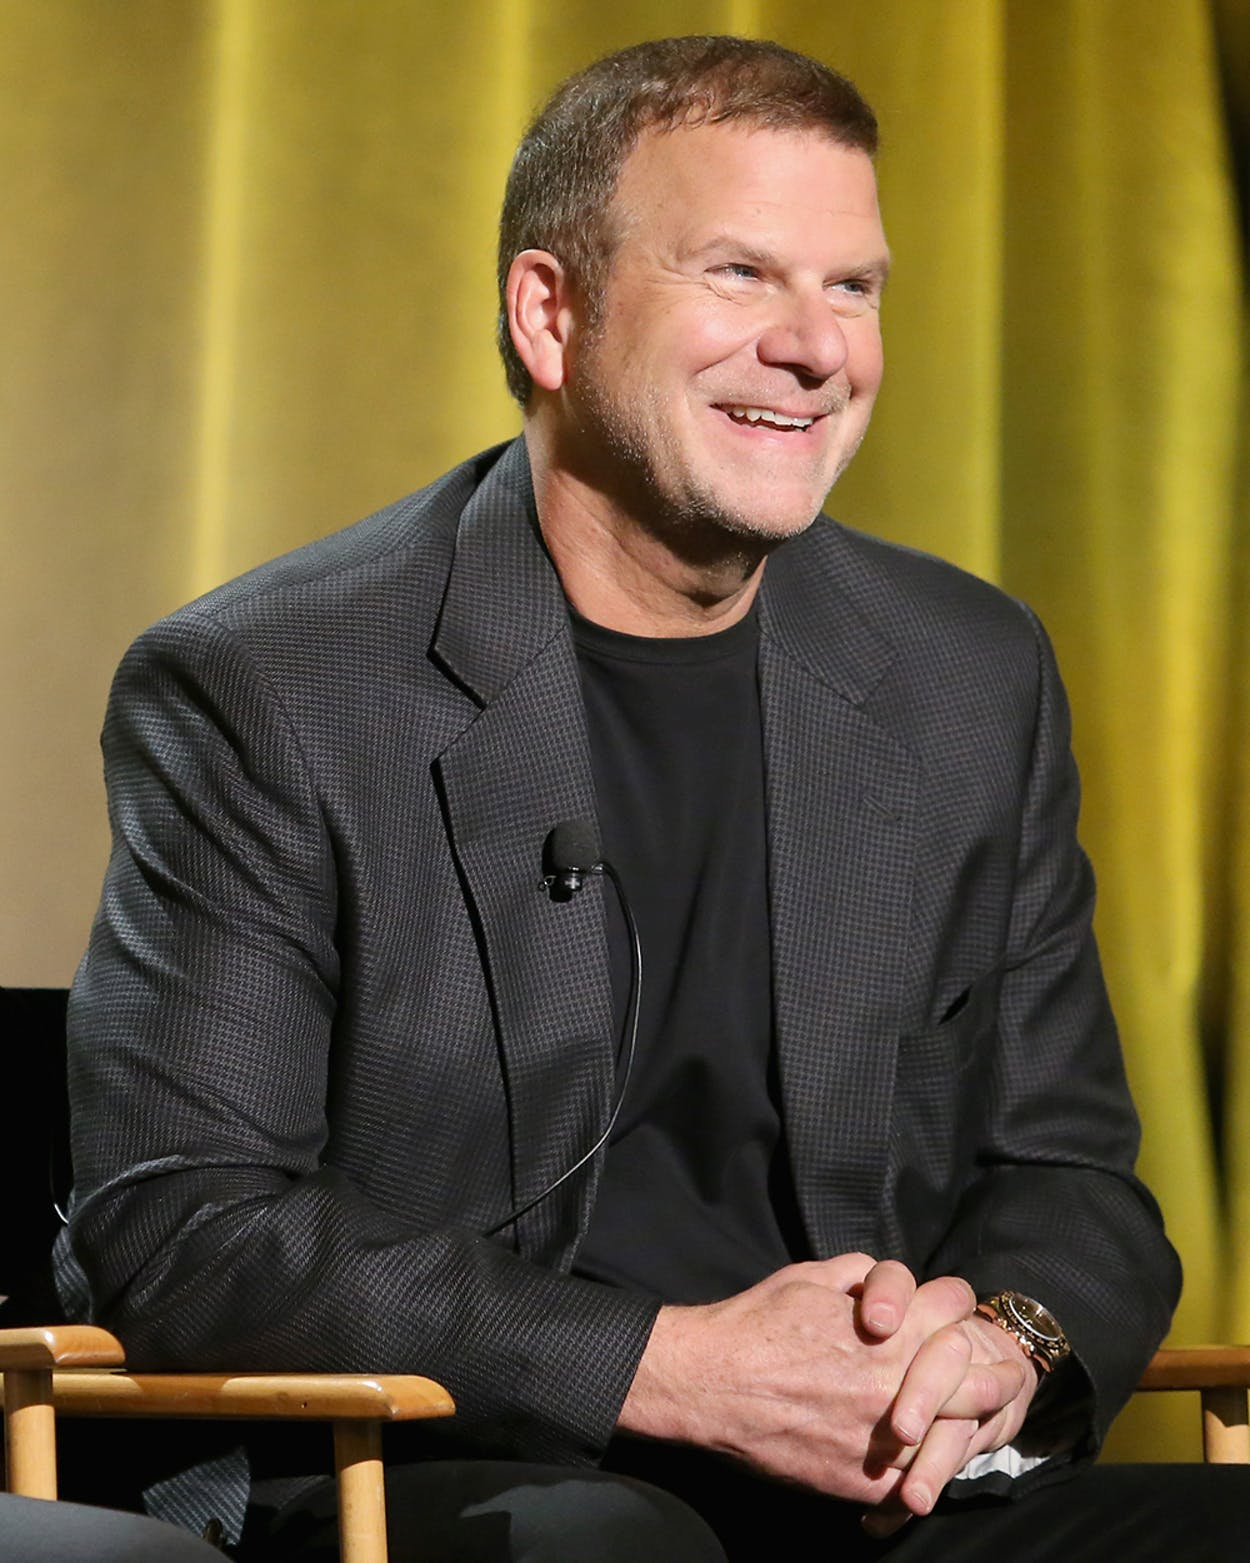 Businessman/TV personality Tilman J. Fertitta speaks onstage during the 2016 NBCUniversal Summer Press Day on April 1, 2016 in Westlake Village, California.